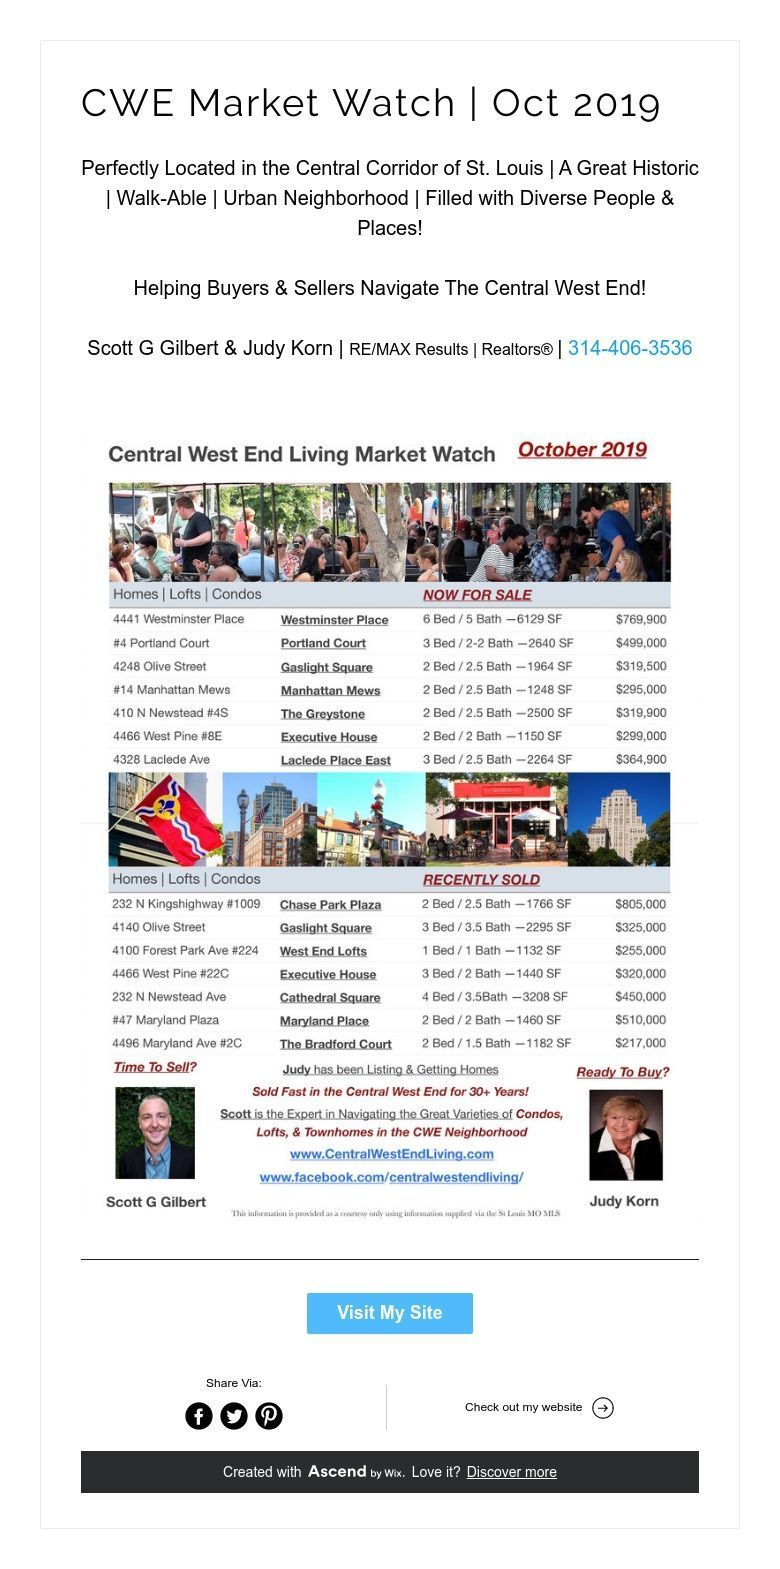 Cwe market watch oct 2019 central west end marketing